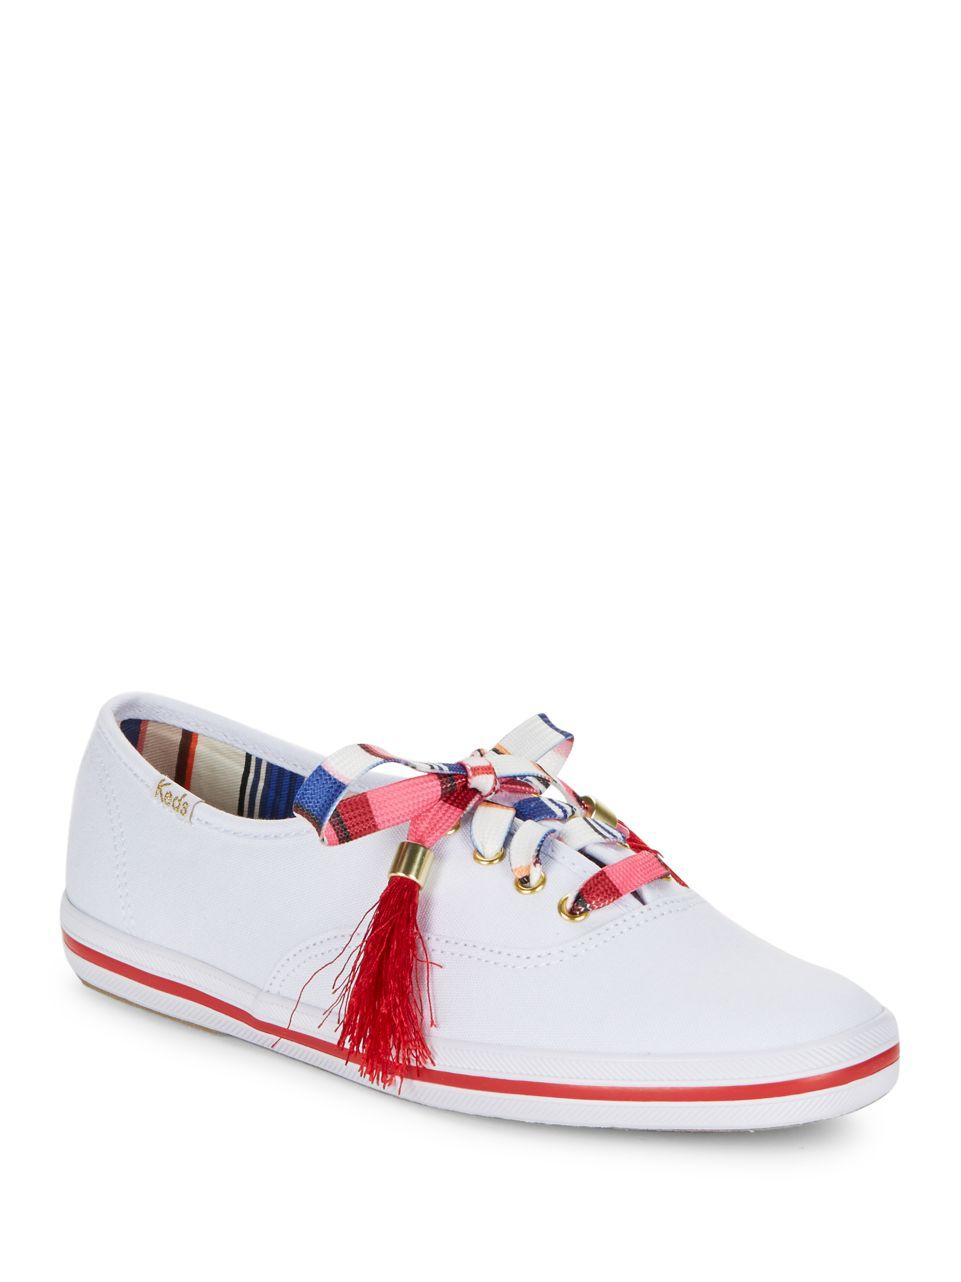 kate spade new york kick keds sneakers in white lyst